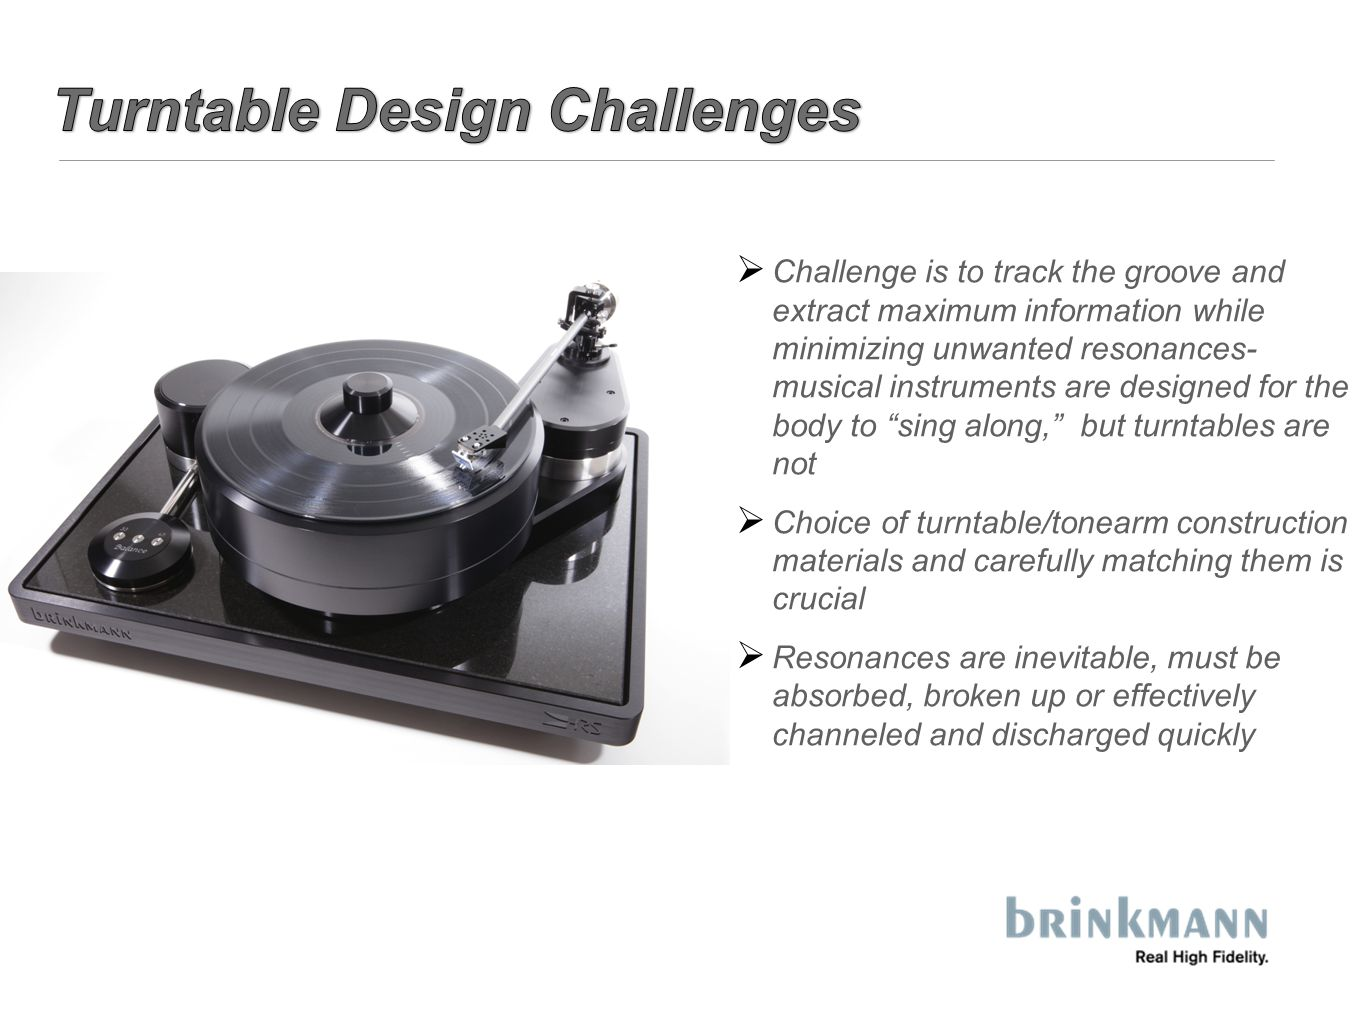  Challenge is to track the groove and extract maximum information while minimizing unwanted resonances- musical instruments are designed for the body to sing along, but turntables are not  Choice of turntable/tonearm construction materials and carefully matching them is crucial  Resonances are inevitable, must be absorbed, broken up or effectively channeled and discharged quickly